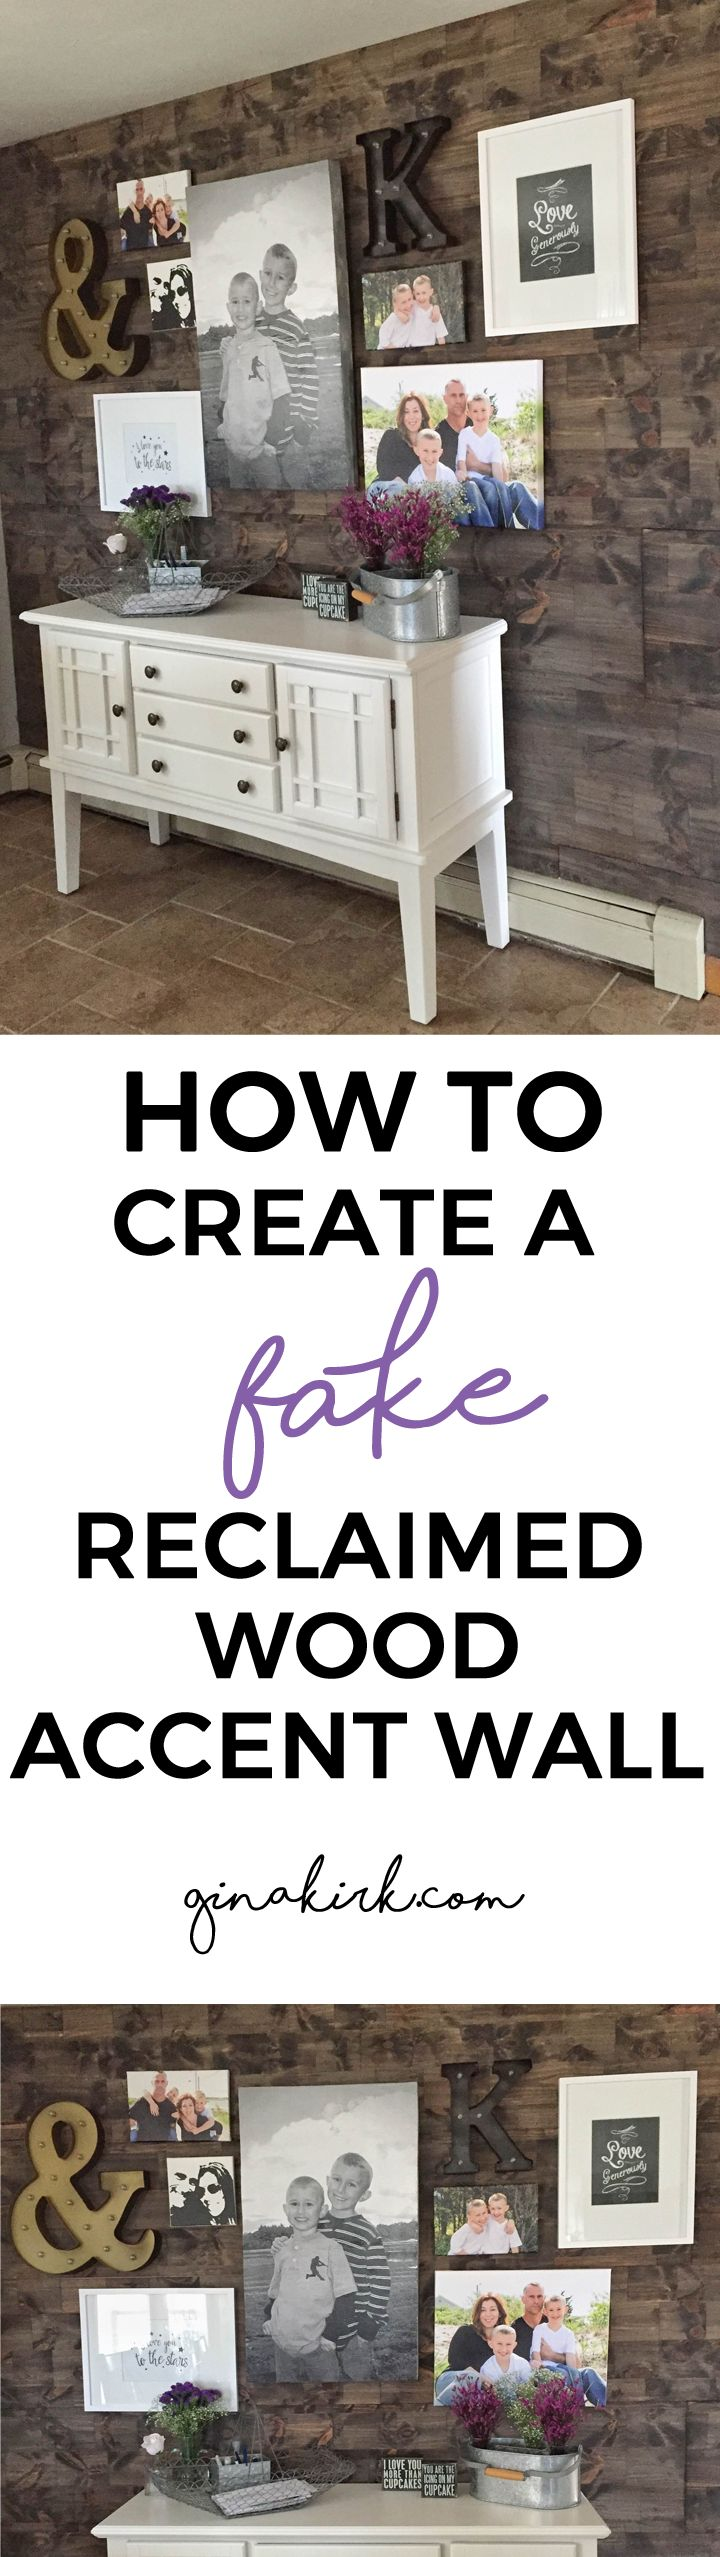 Window wall design ideas pinterest nyc home and accent walls - How To Fake A Reclaimed Wood Wall Wood Accent Wallswood